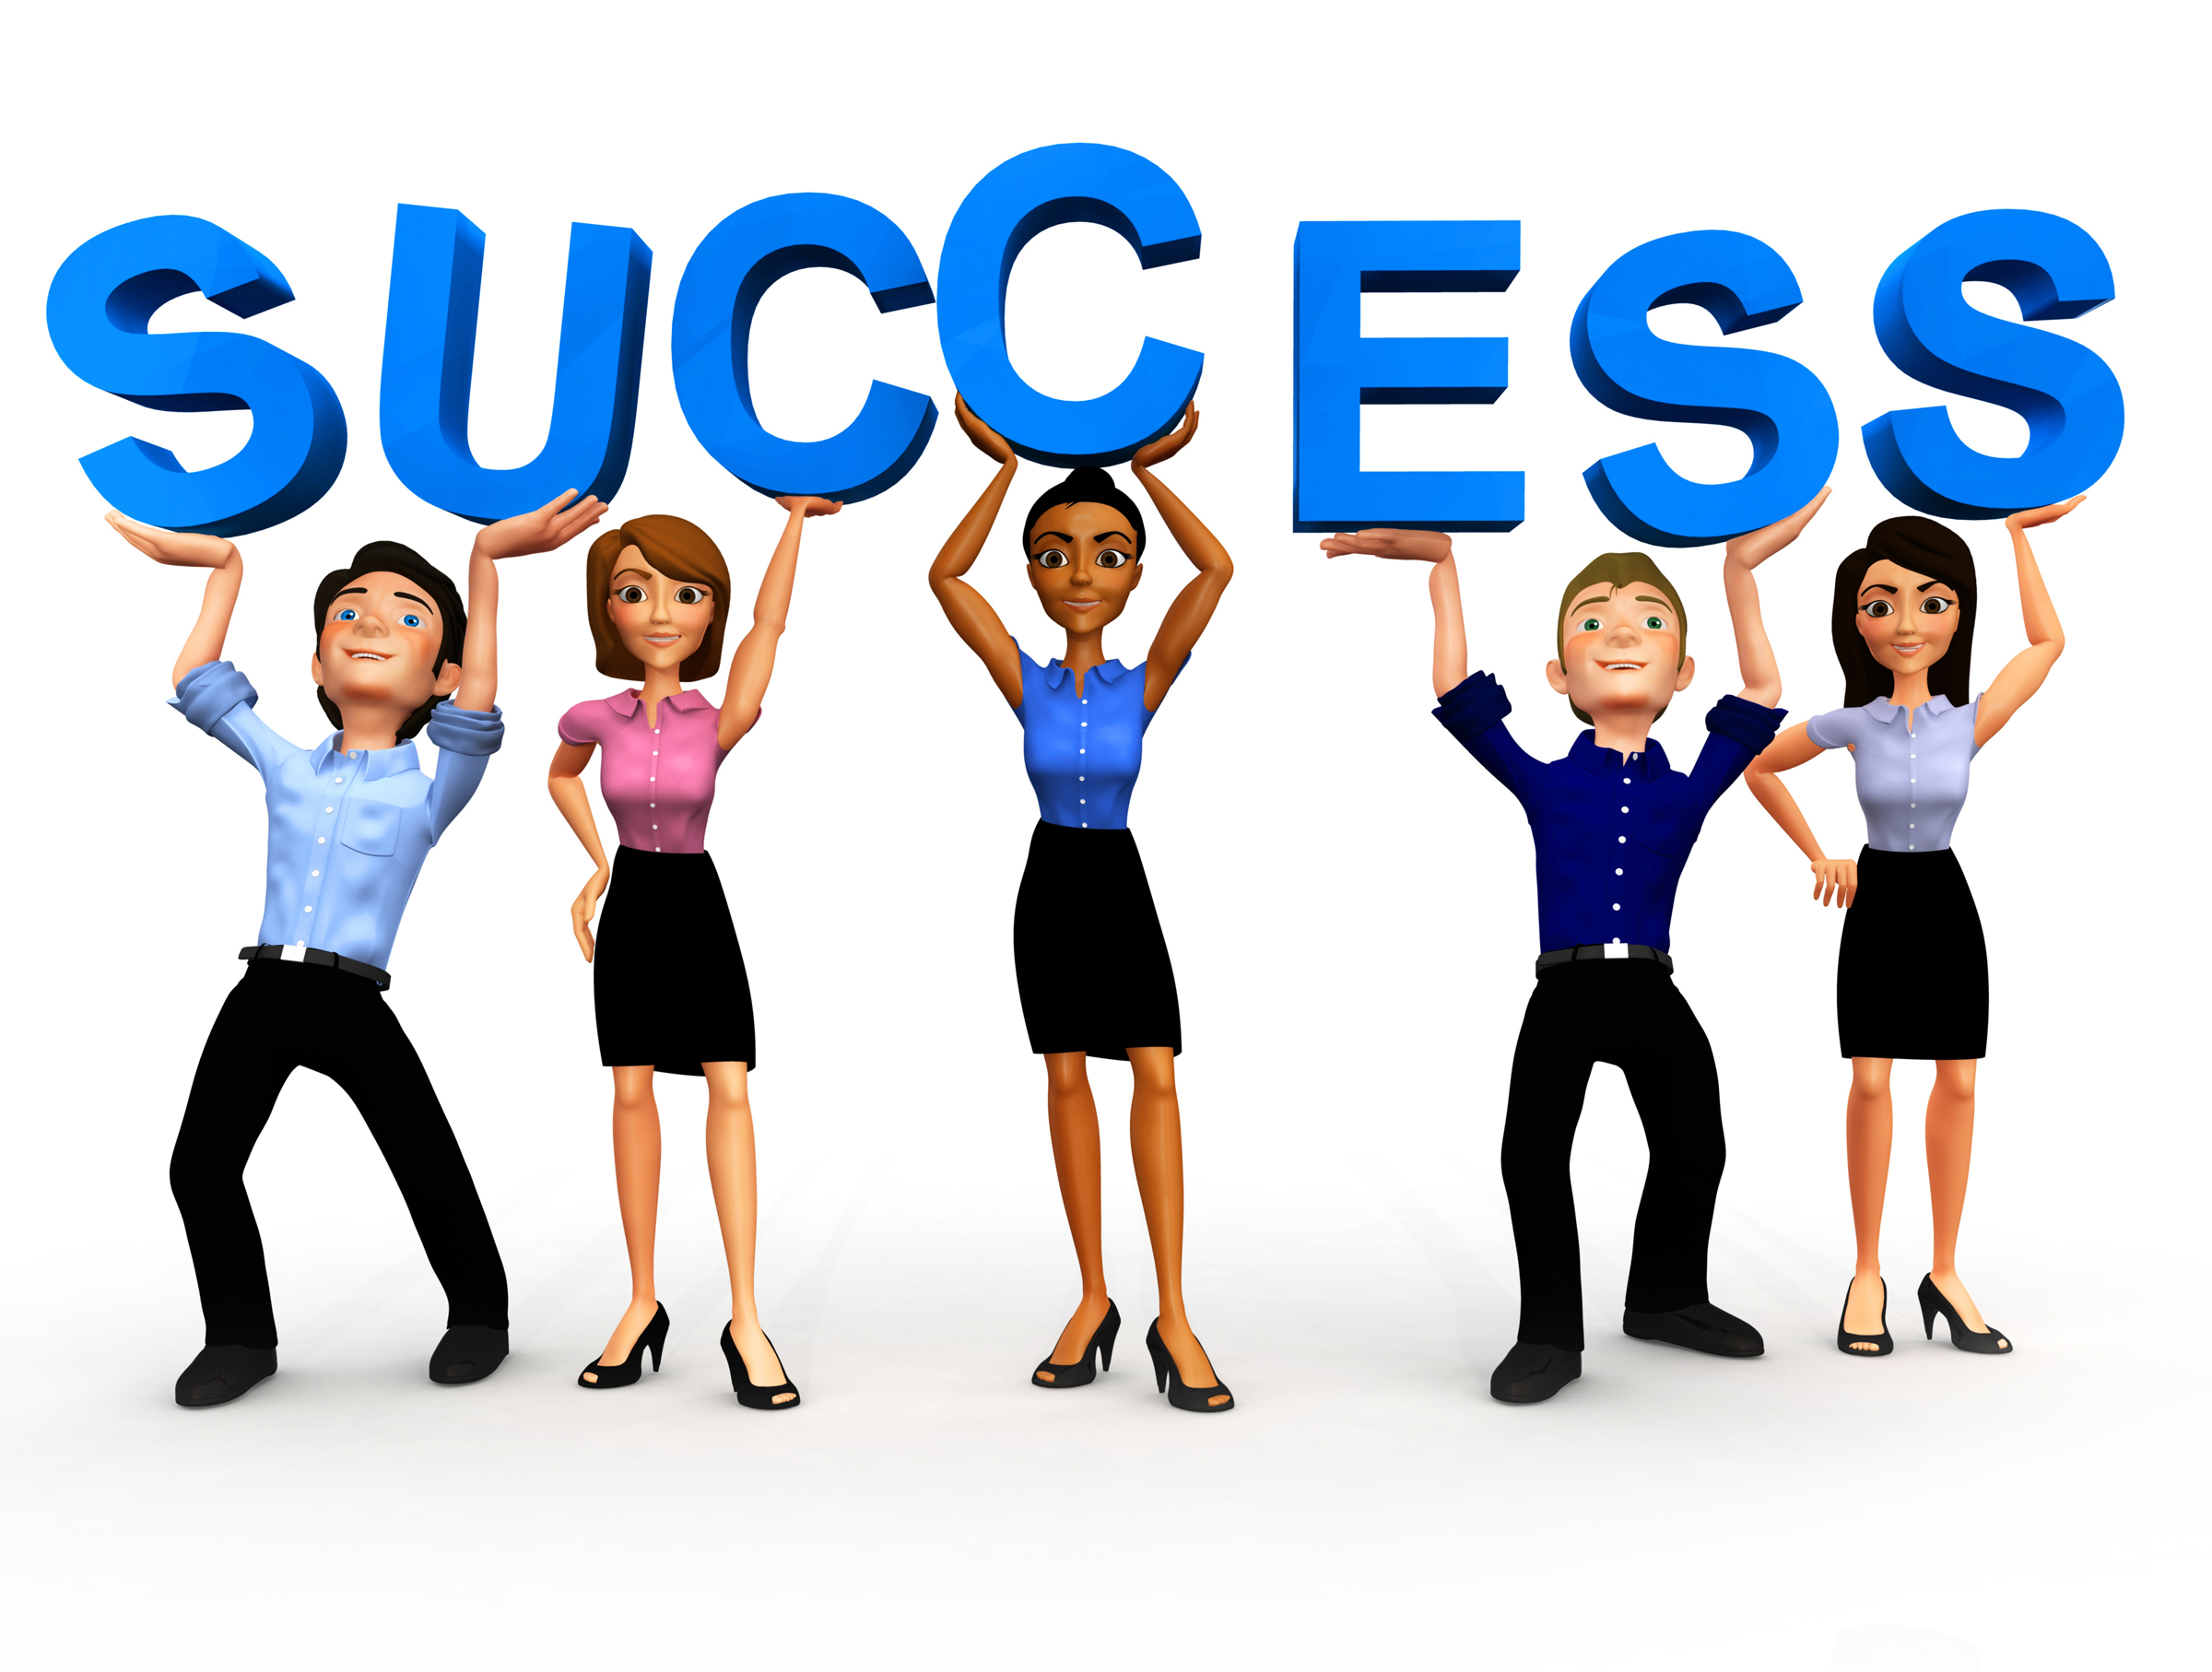 Business People Clipart Free Clipart Ima-Business people clipart free clipart images 4-0